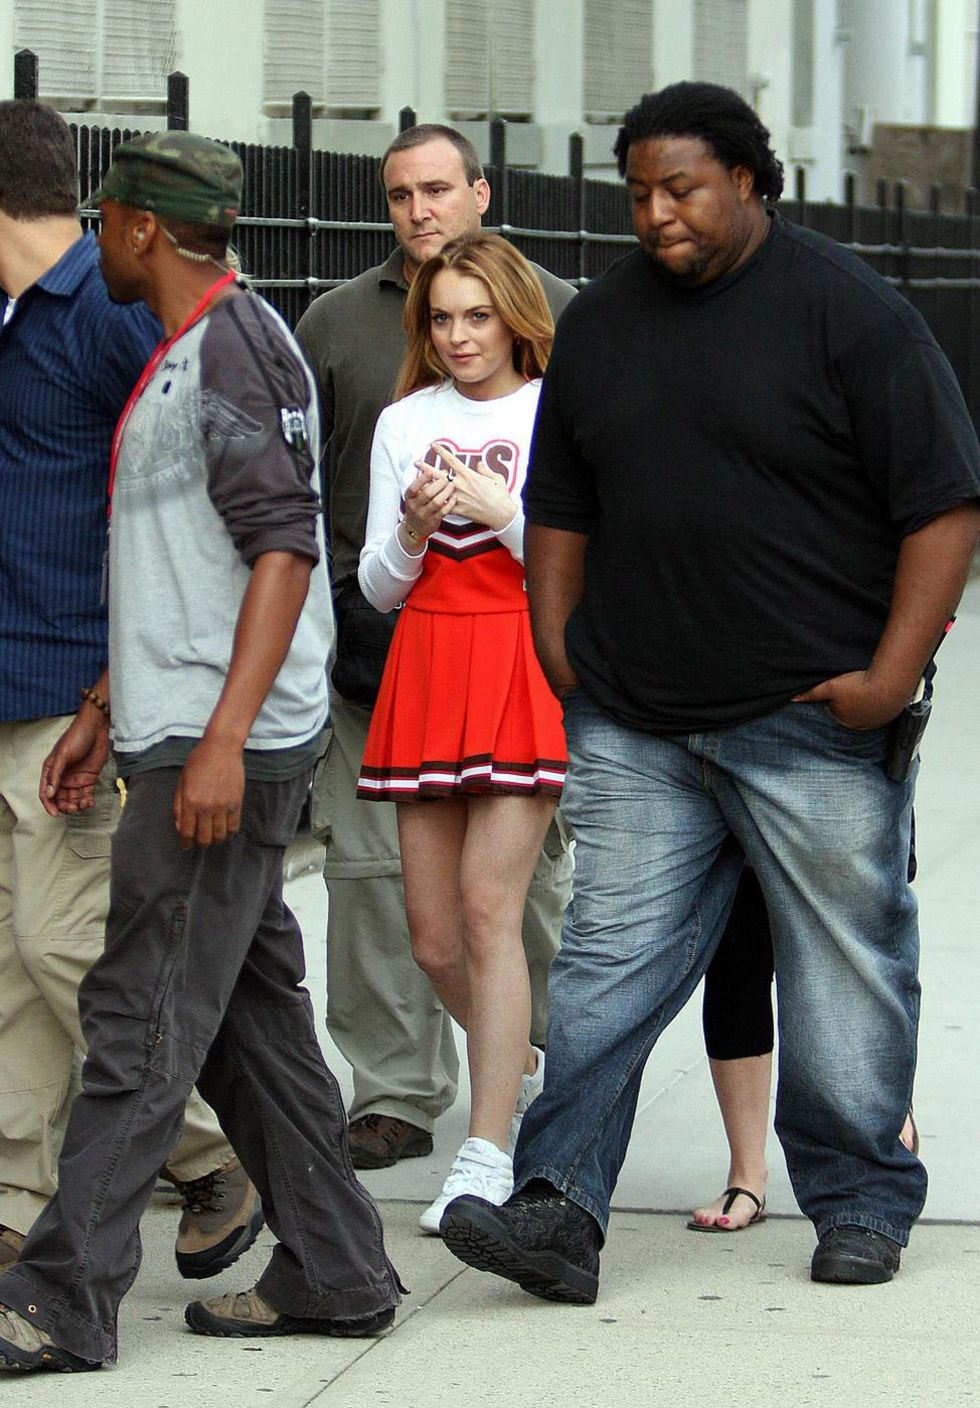 lindsay-lohan-as-a-cheerleader-on-the-set-of-ugly-betty-01